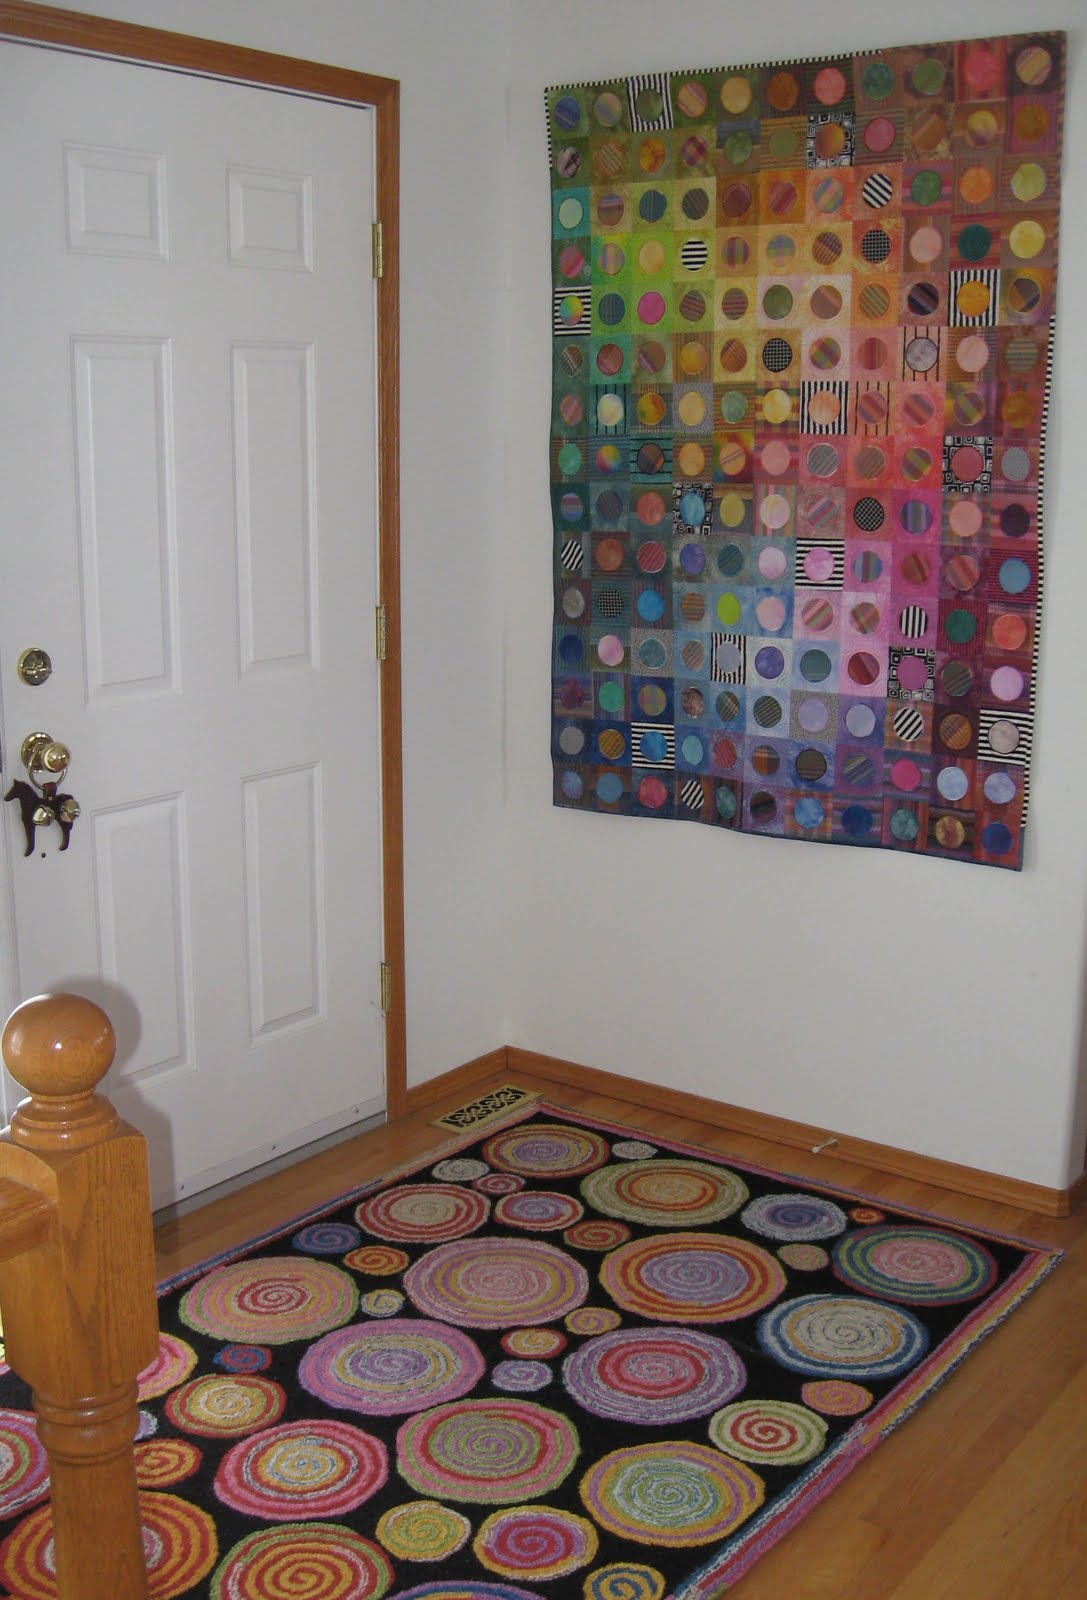 Cathy tomm quilts not so black and white for Front door quilt pattern